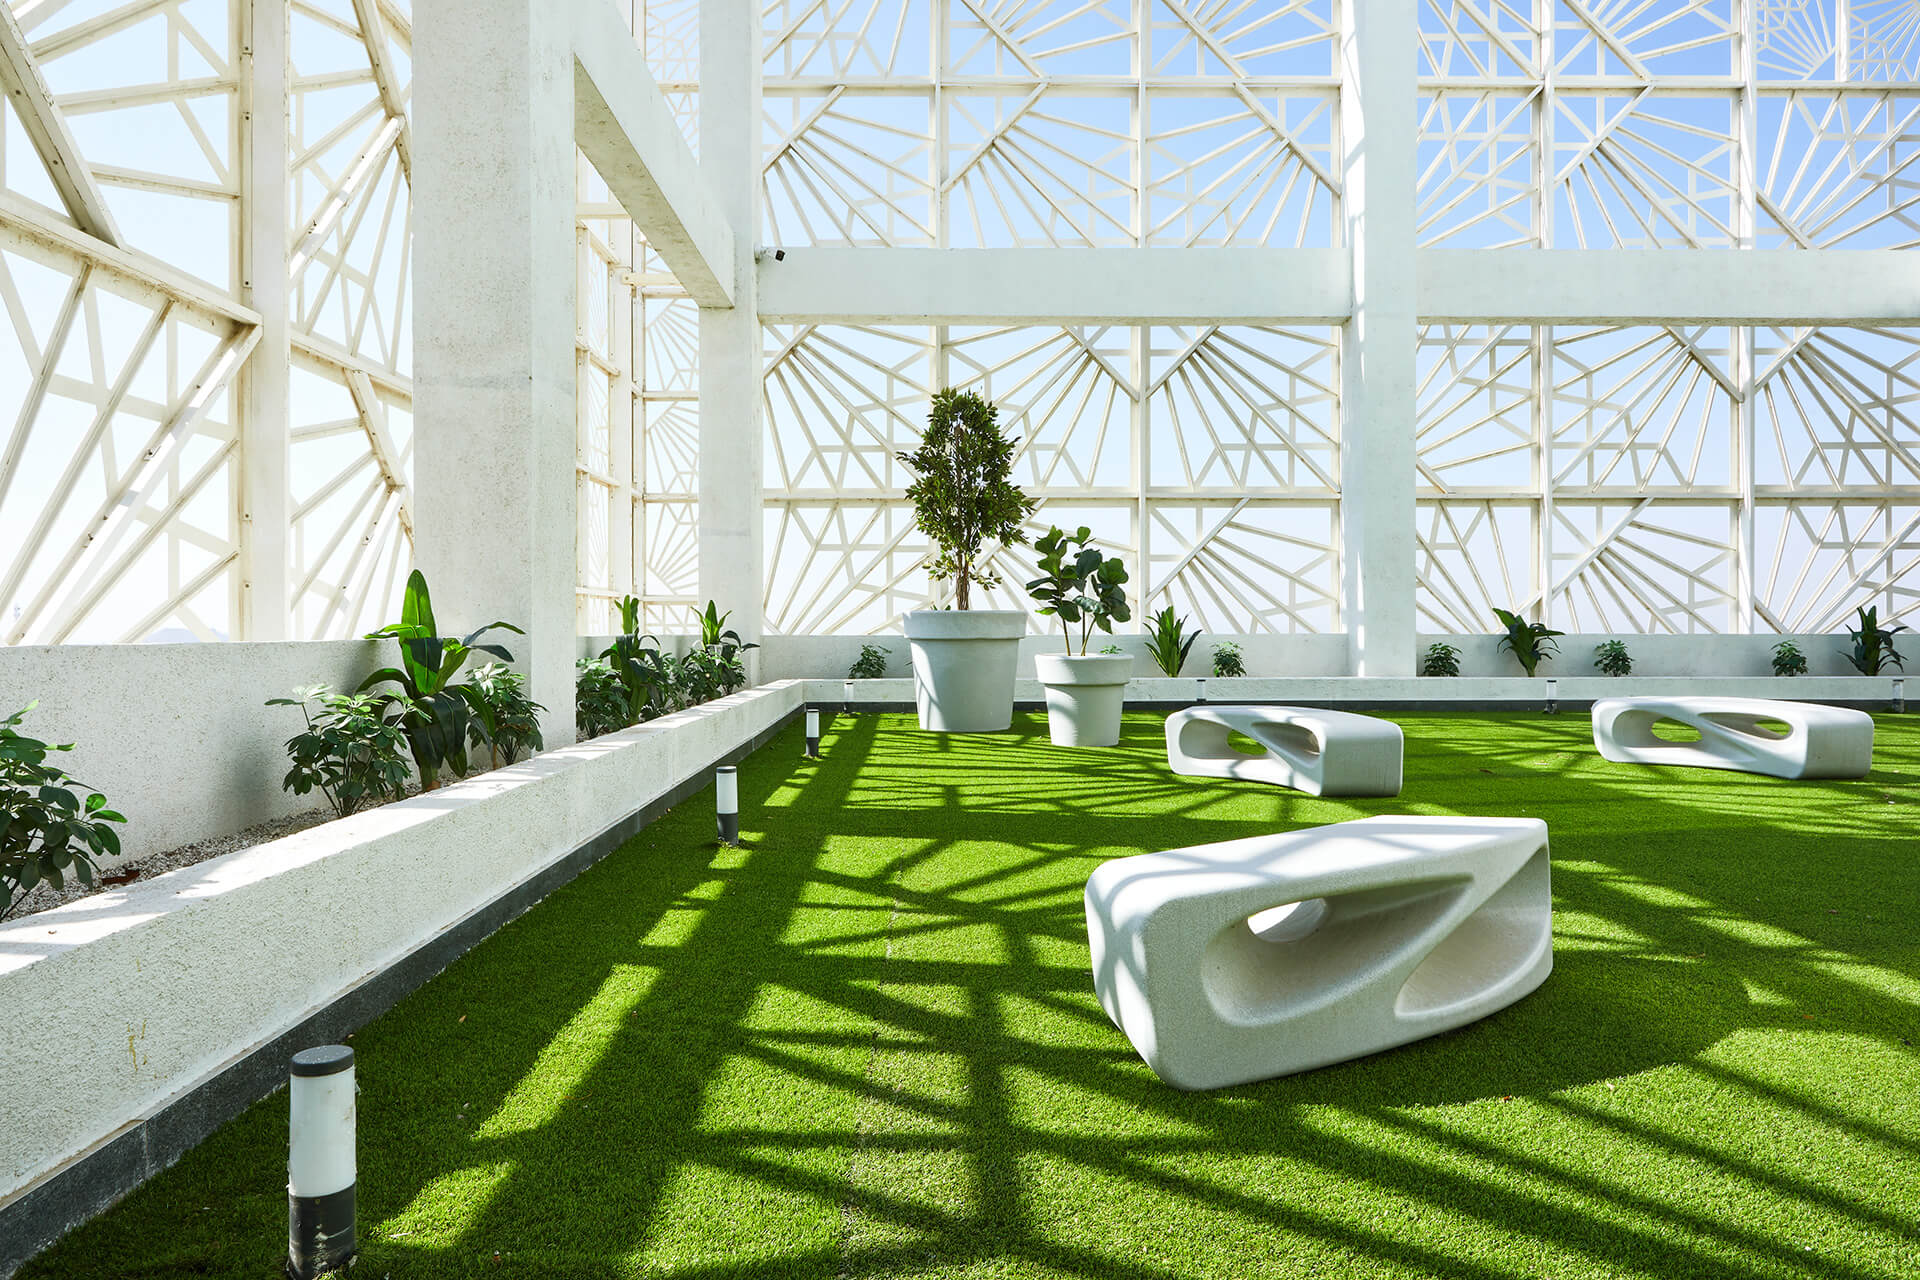 Offices are scattered among green spaces and open terraces | Auric Hall by IMK Architects | STIRworld